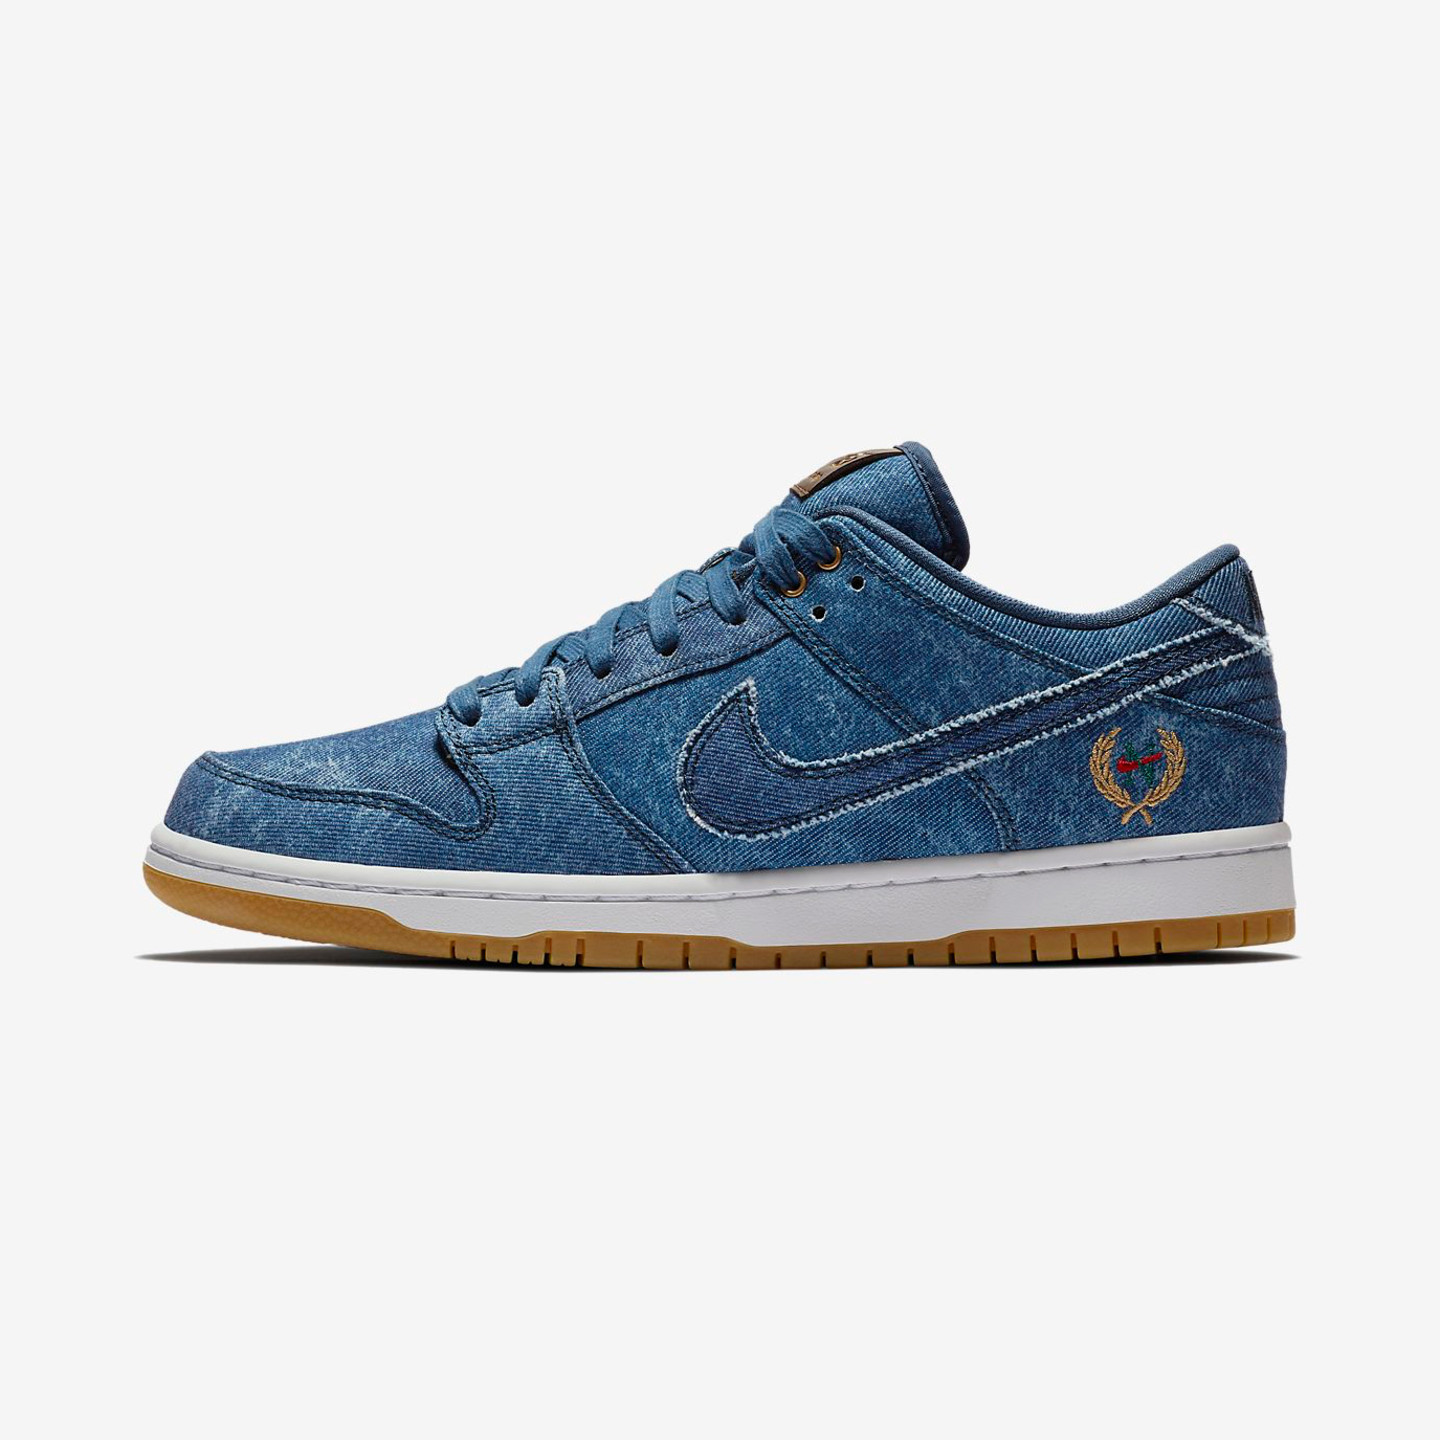 Nike SB Dunk Low TRD QS 'East West Pack' Utility Blue / White 883232-441